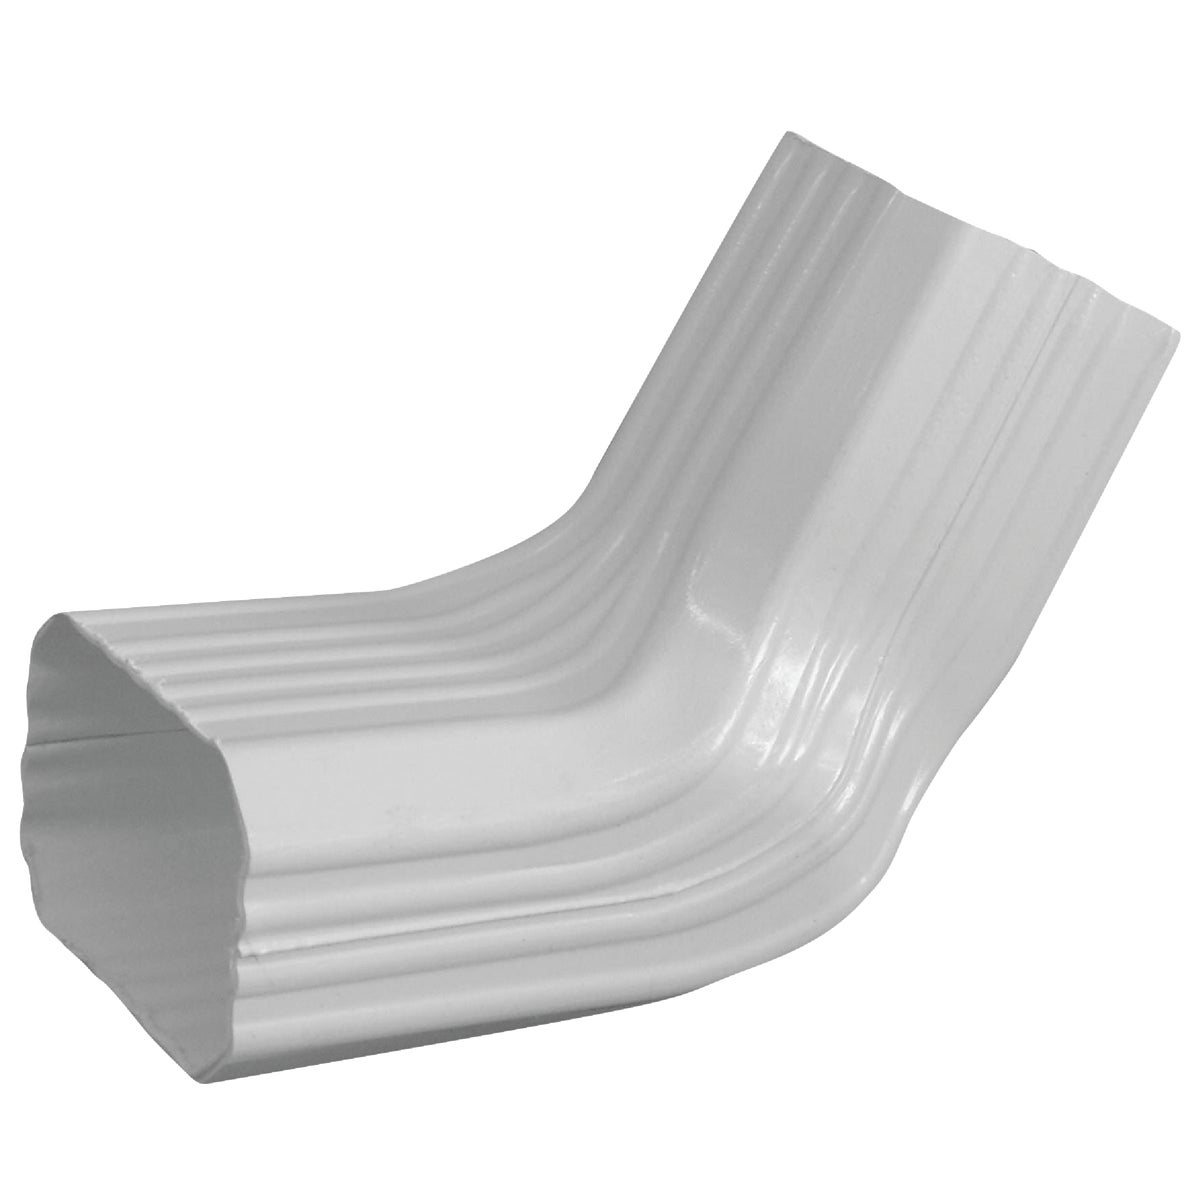 2X3 WHT ELBOW - AW221 by Genova Products